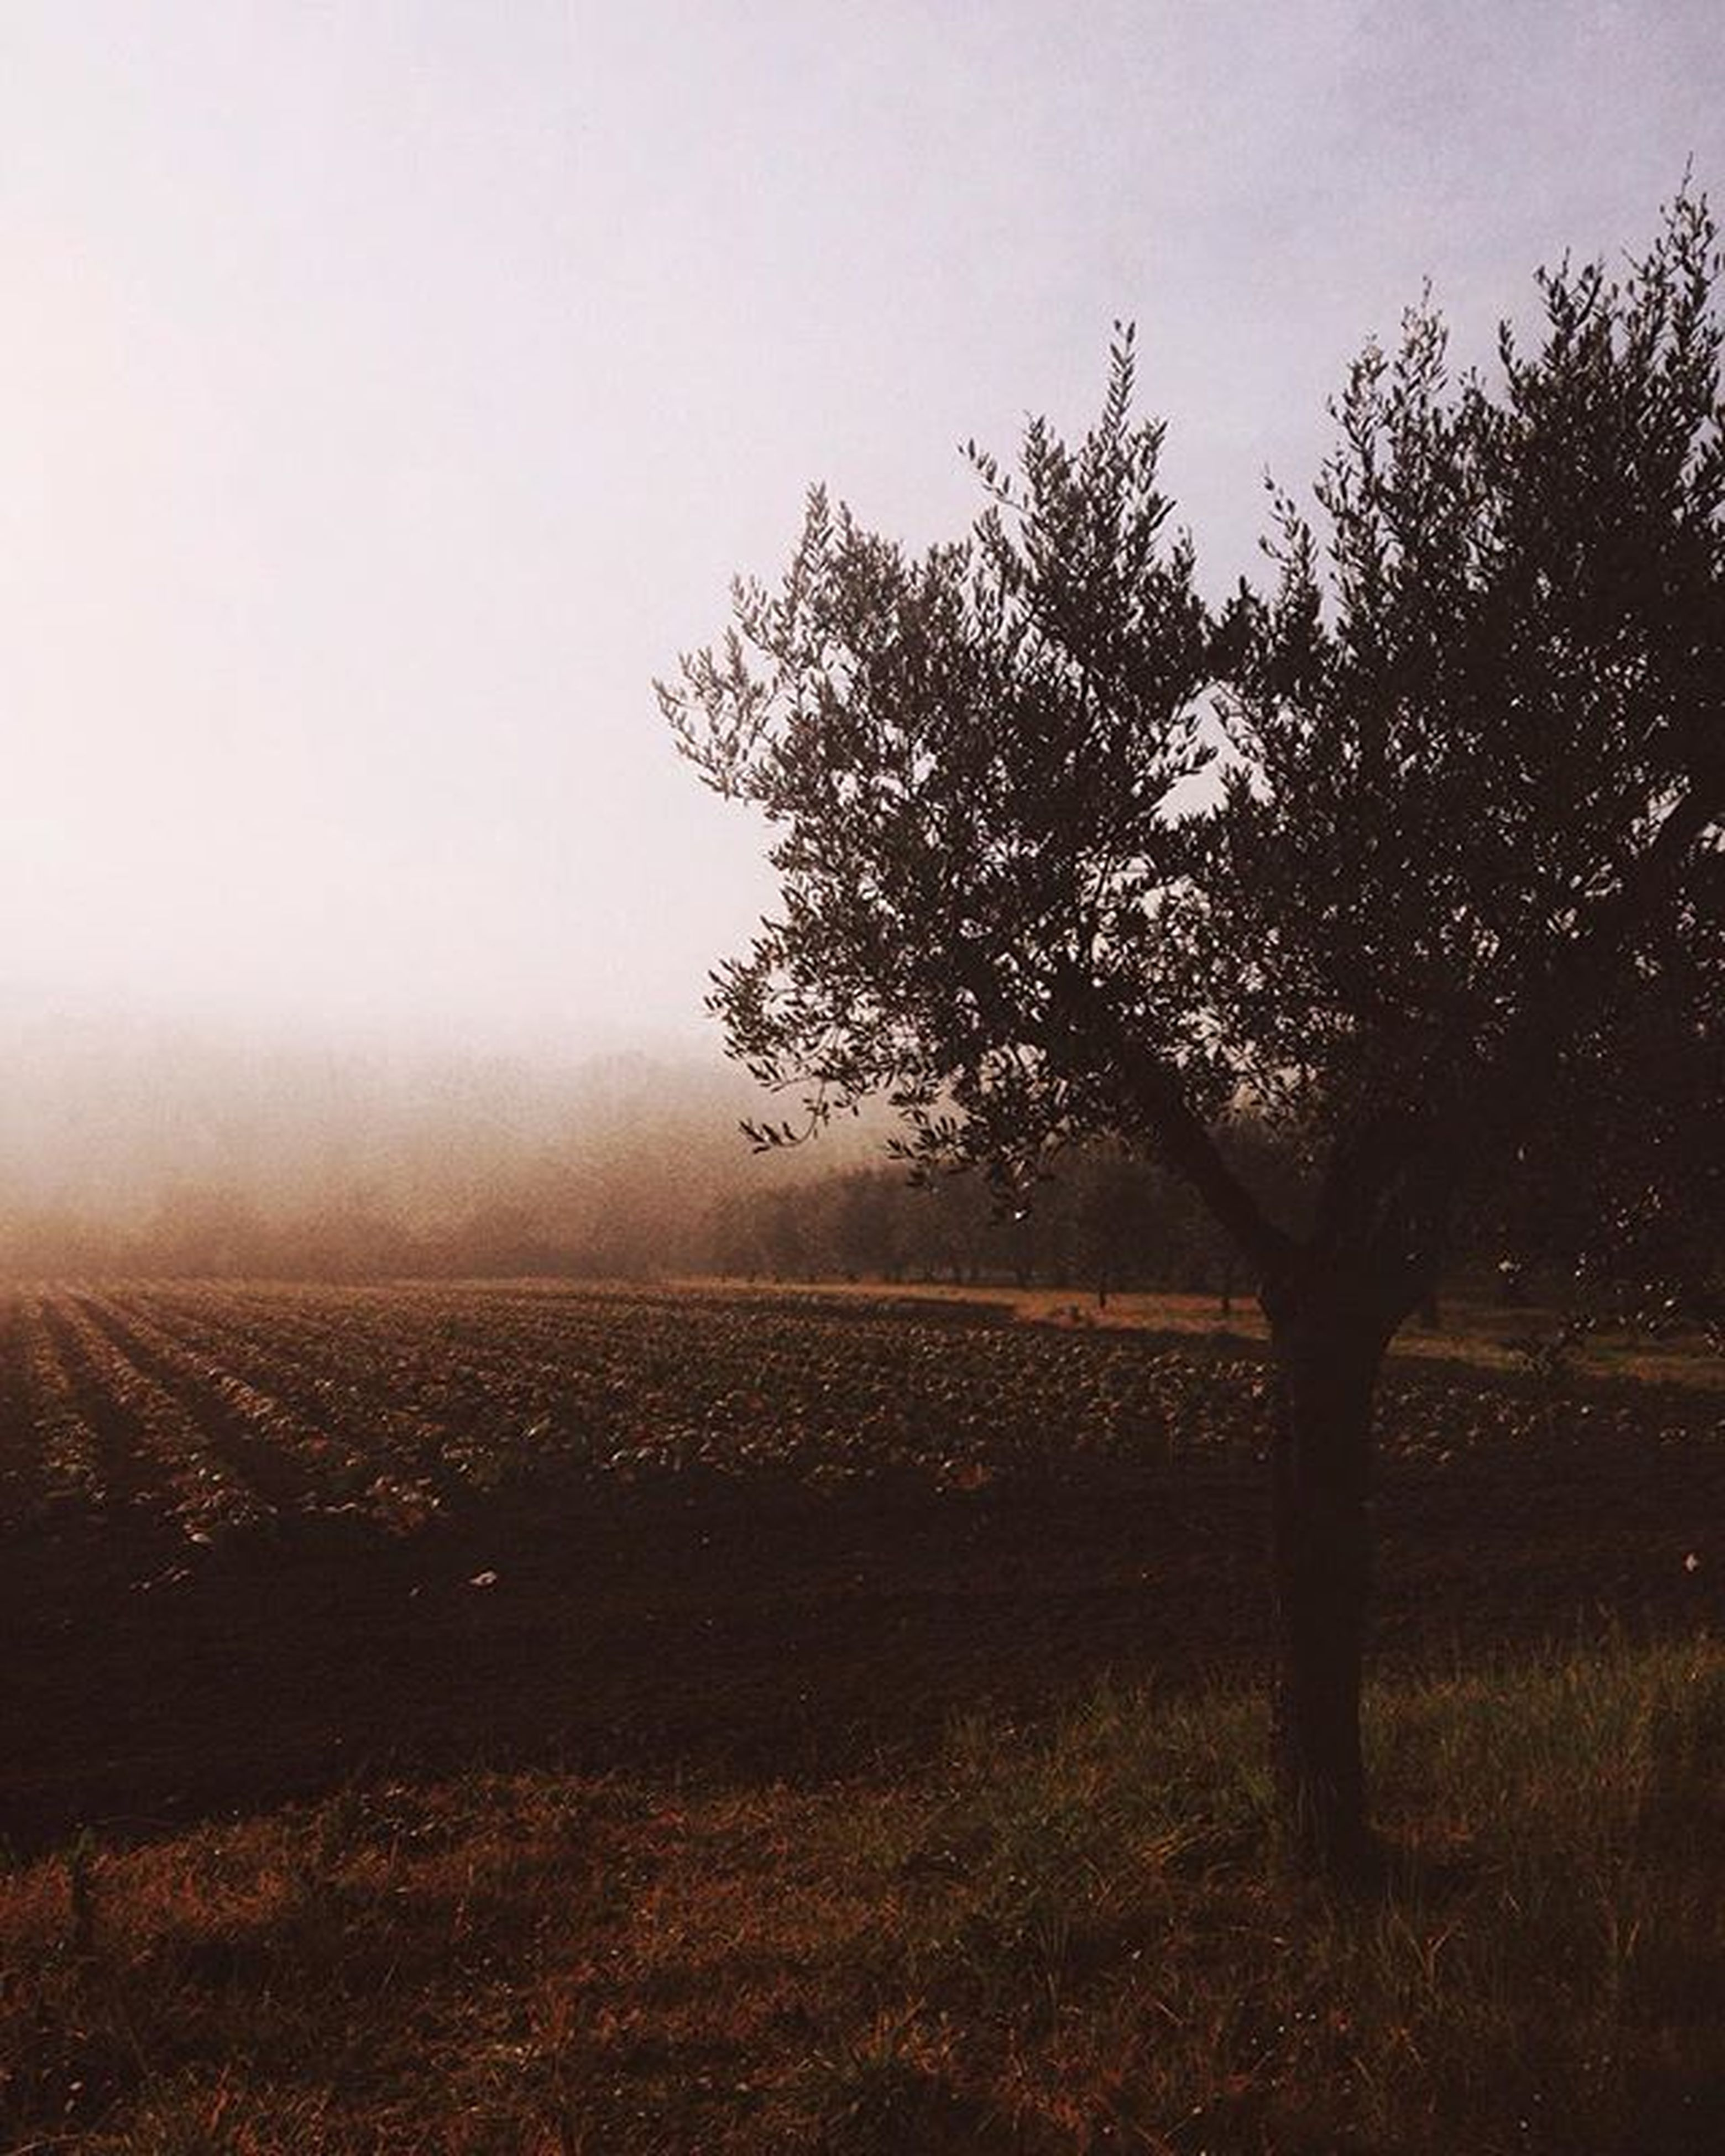 landscape, tranquility, tranquil scene, field, tree, fence, scenics, nature, fog, sky, beauty in nature, rural scene, growth, grass, foggy, bare tree, non-urban scene, copy space, no people